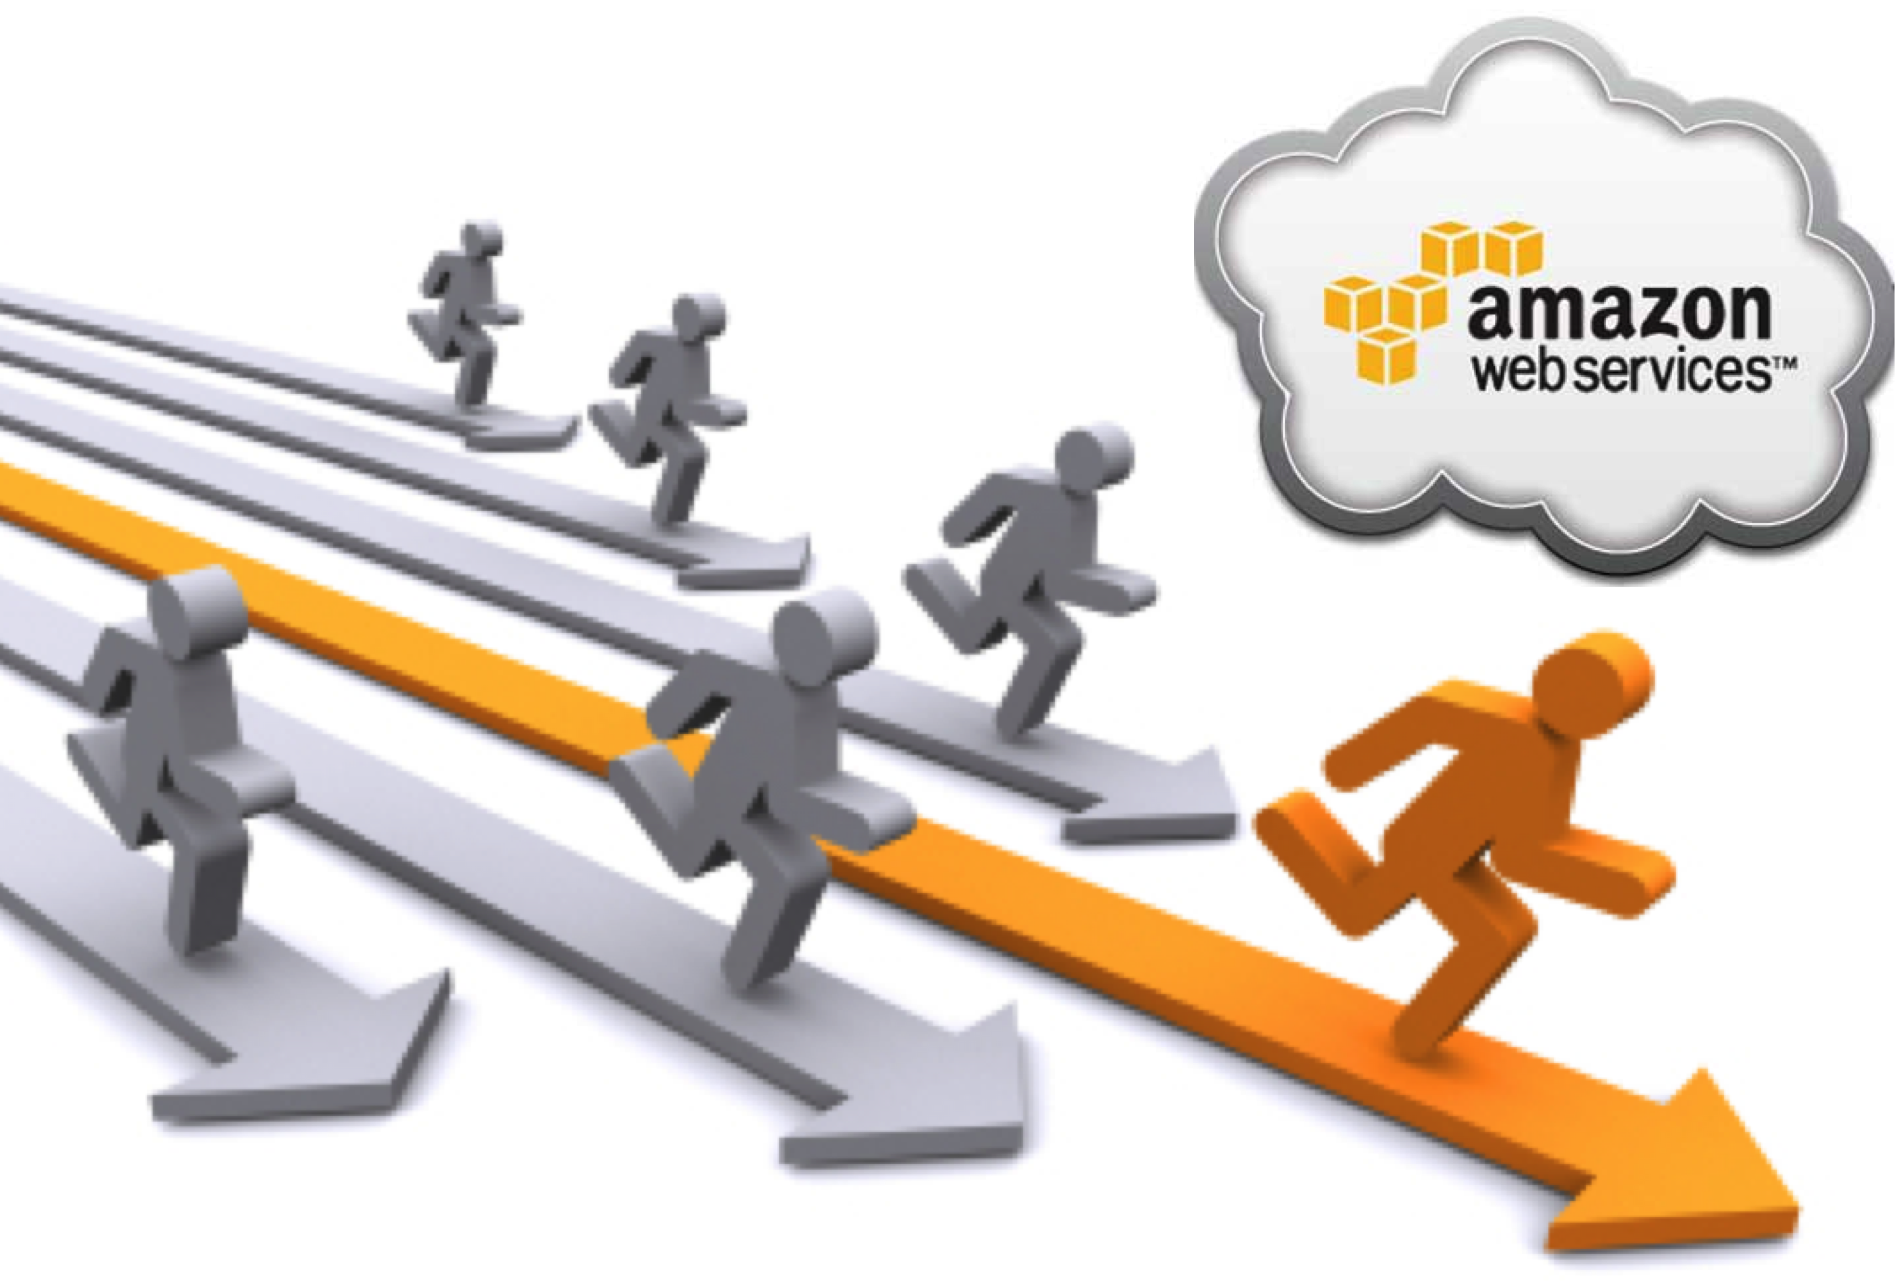 Pin by Breeze Telecom on AWS | Technology, Amazon, Tech